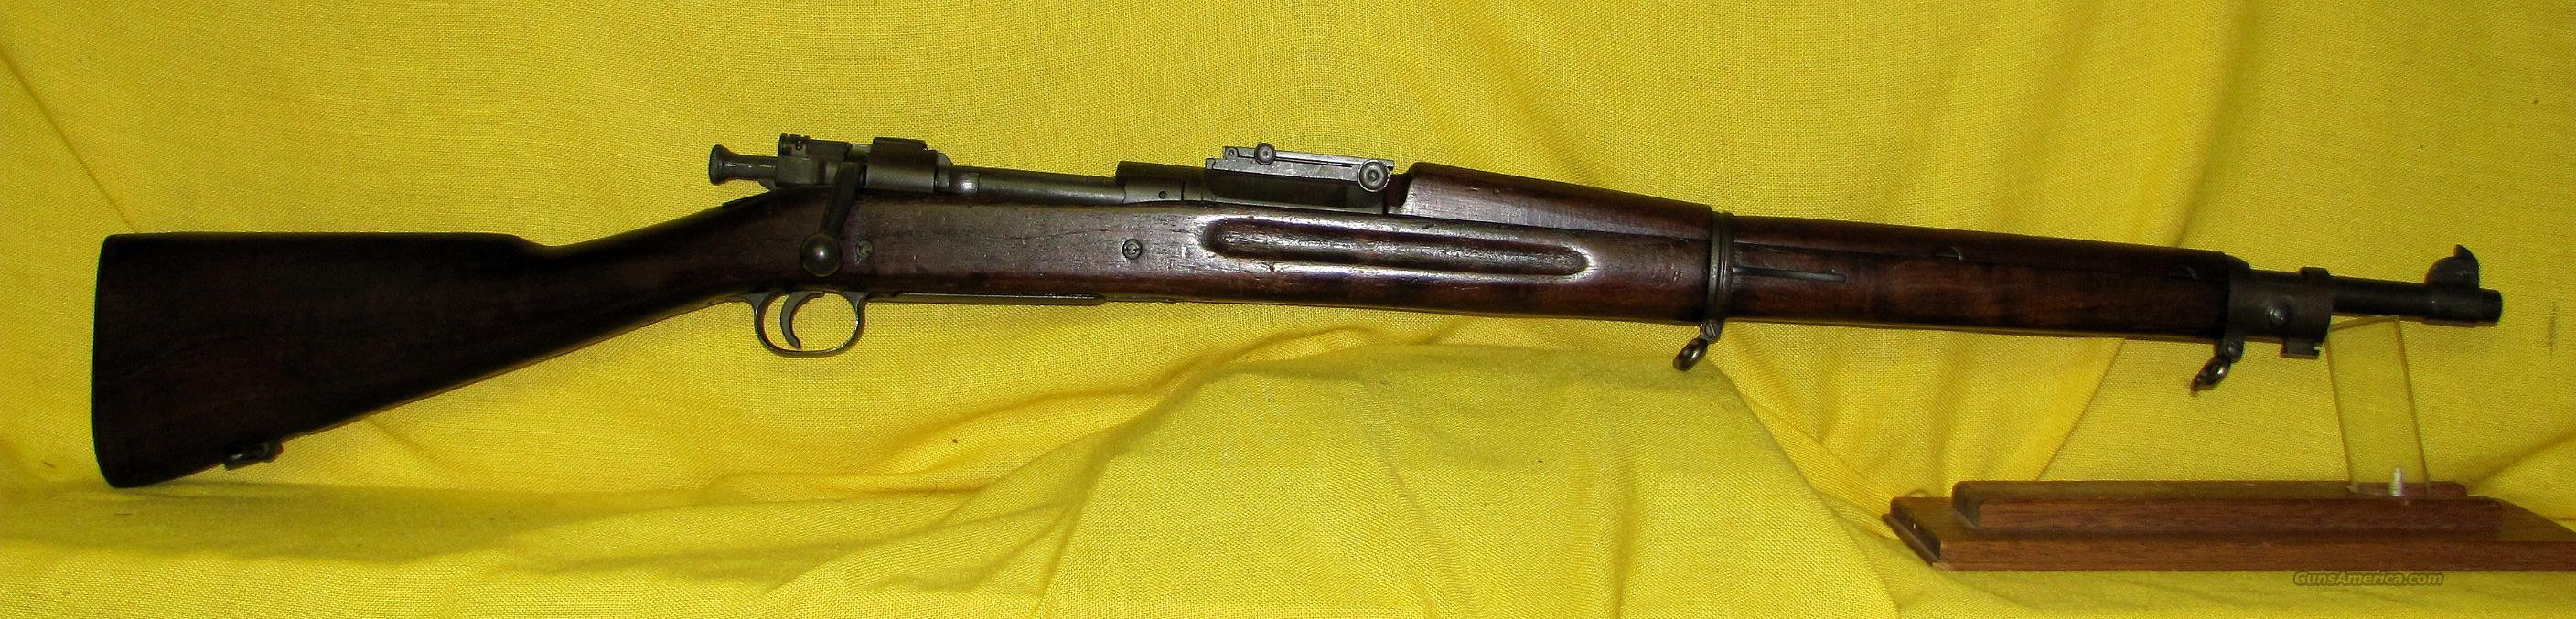 SPRINGFIELD 1903 30/06 DATED 5-27  Guns > Rifles > Military Misc. Rifles US > 1903 Springfield/Variants